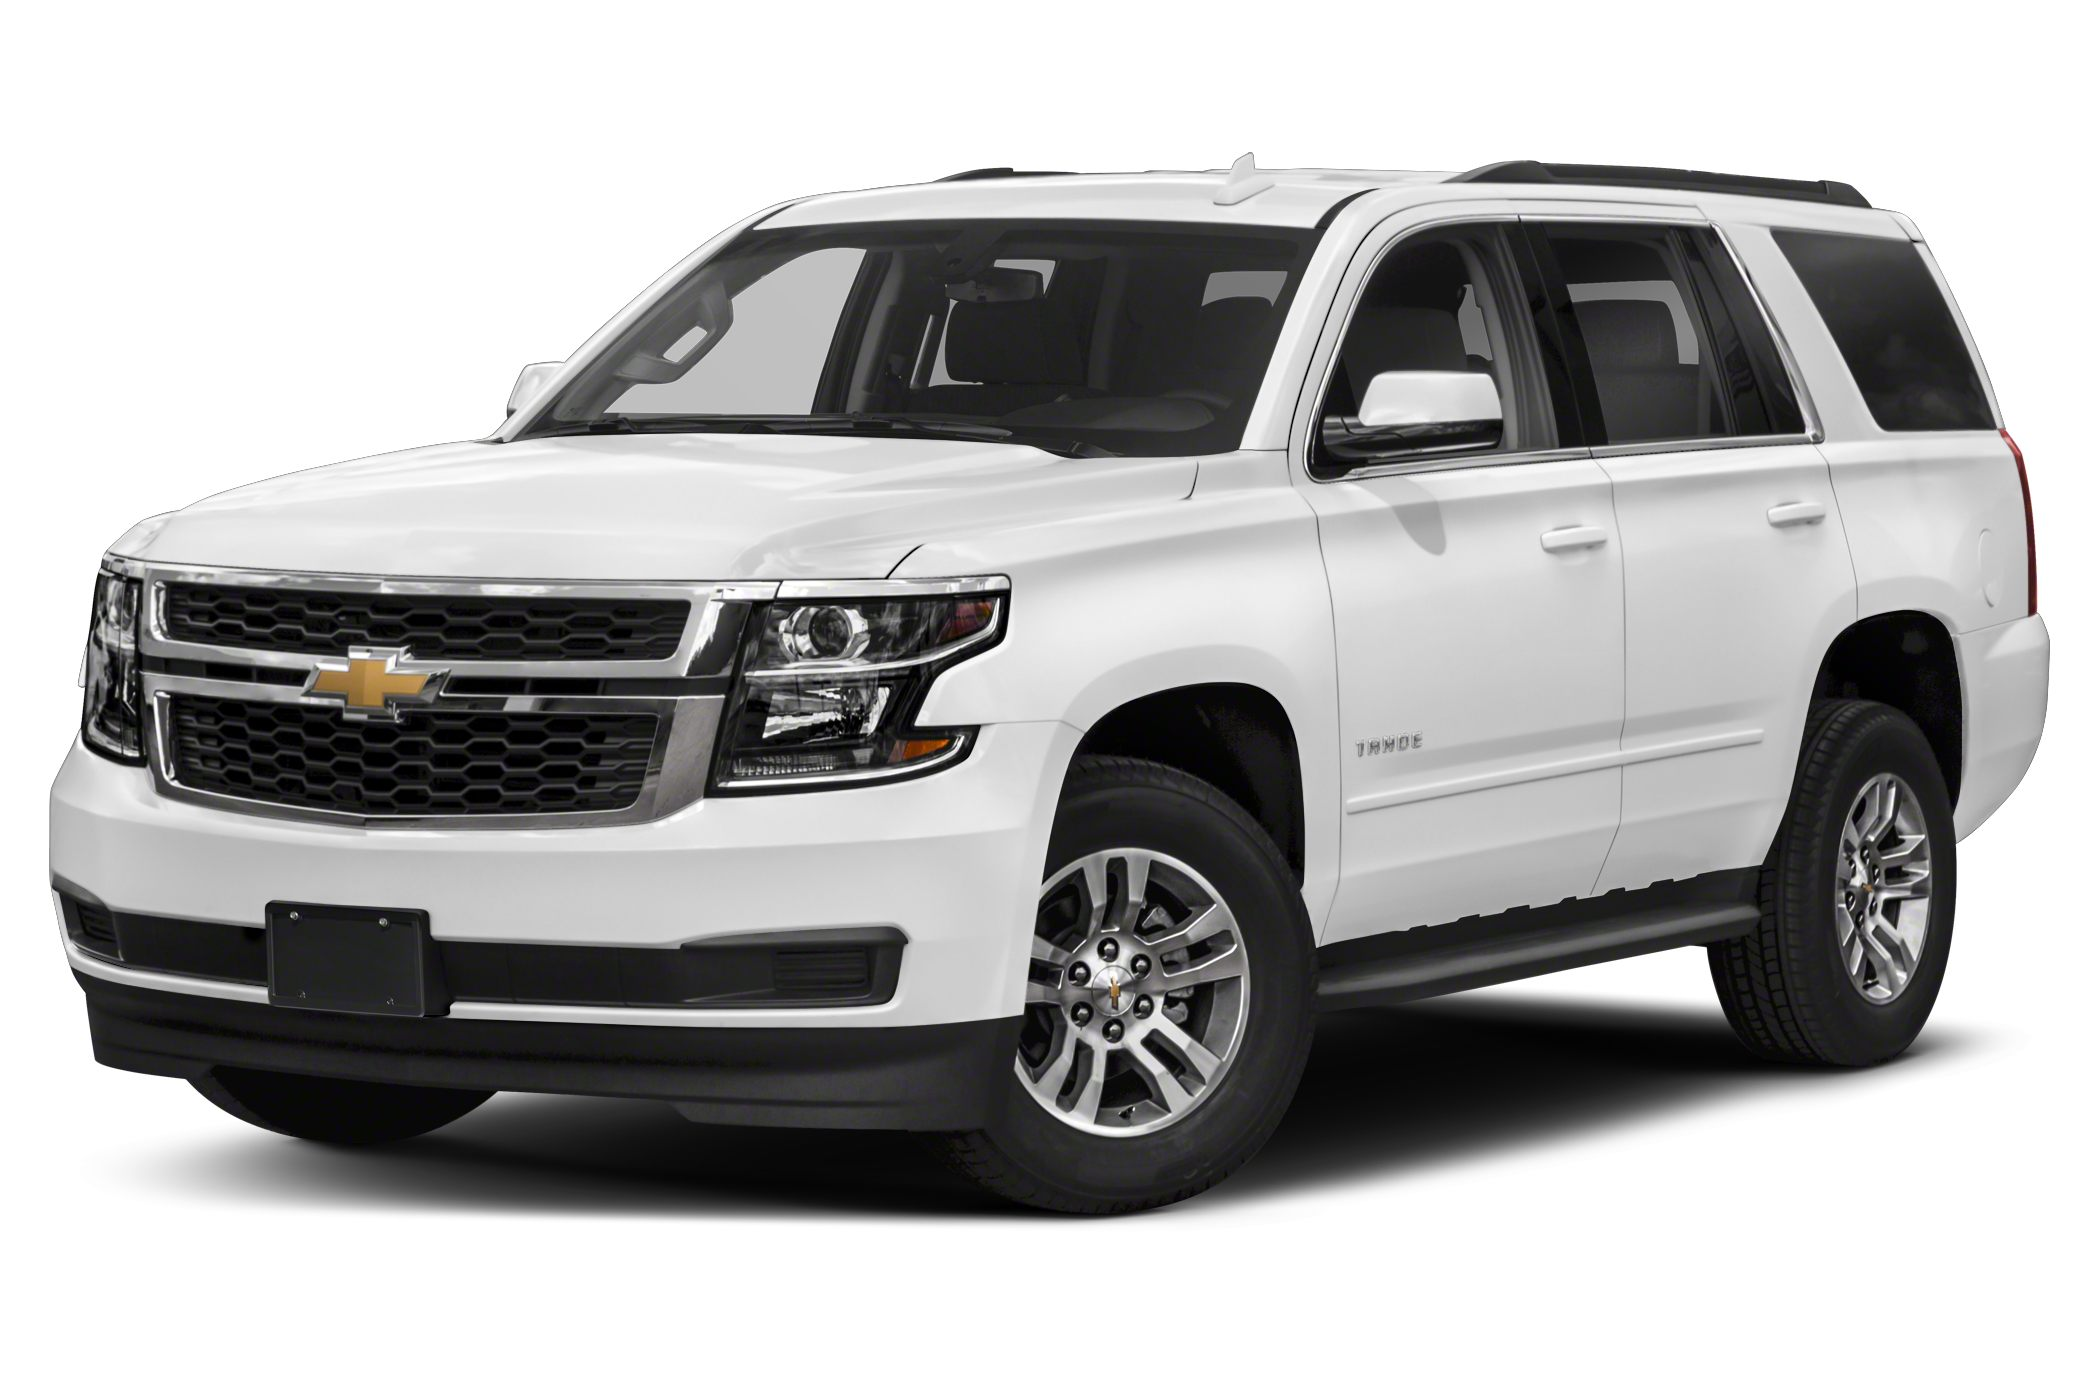 2018 Chevrolet Tahoe Deals, Prices, Incentives & Leases ...